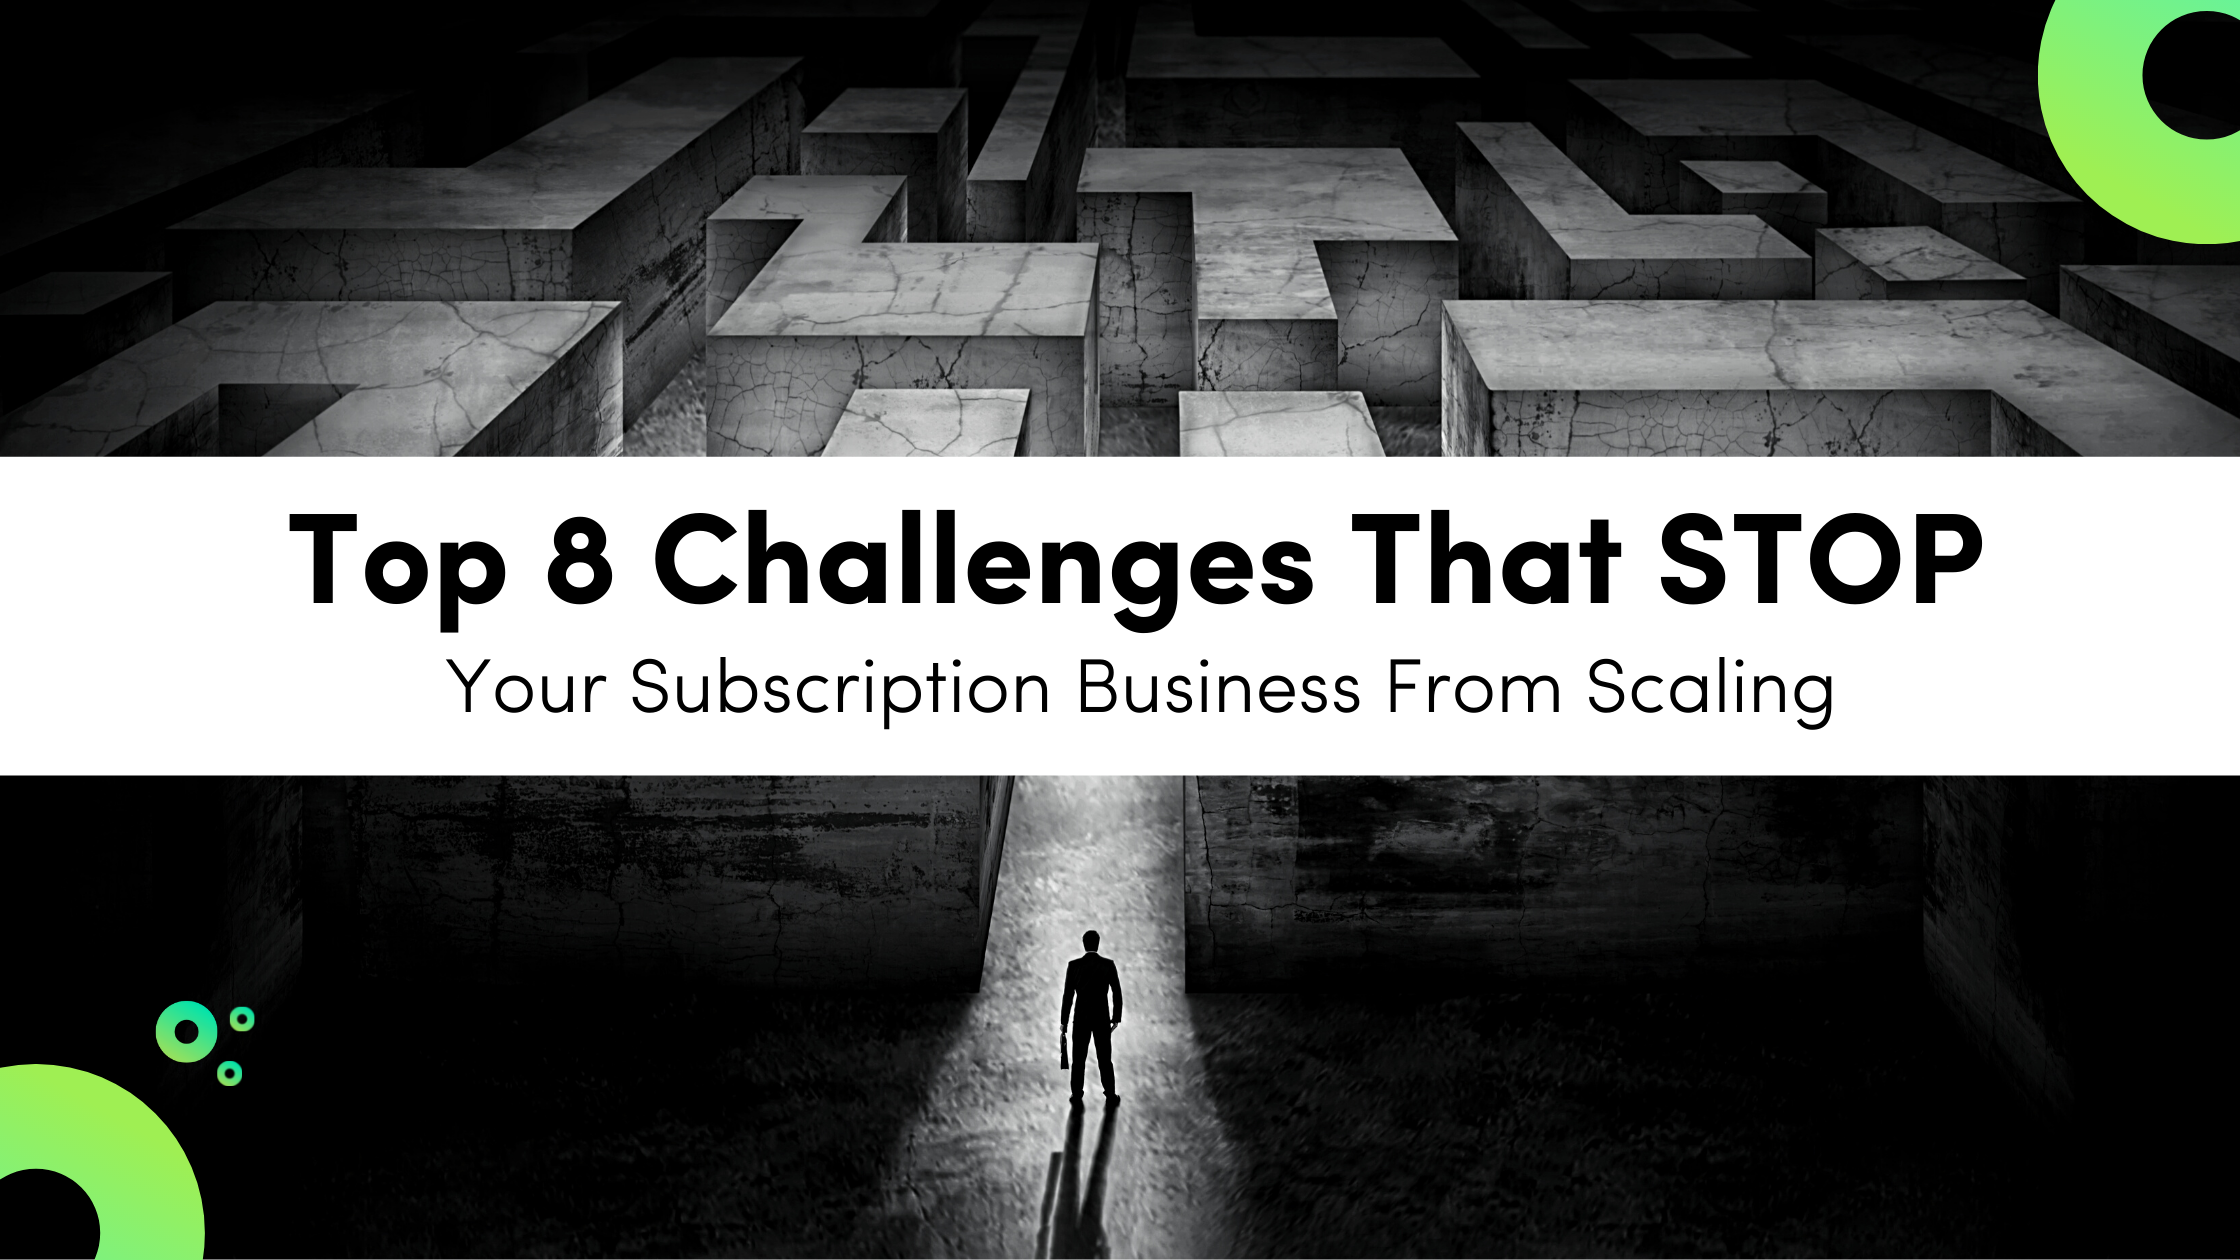 Top 8 Challenges That Stop Your Subscription Business From Scaling